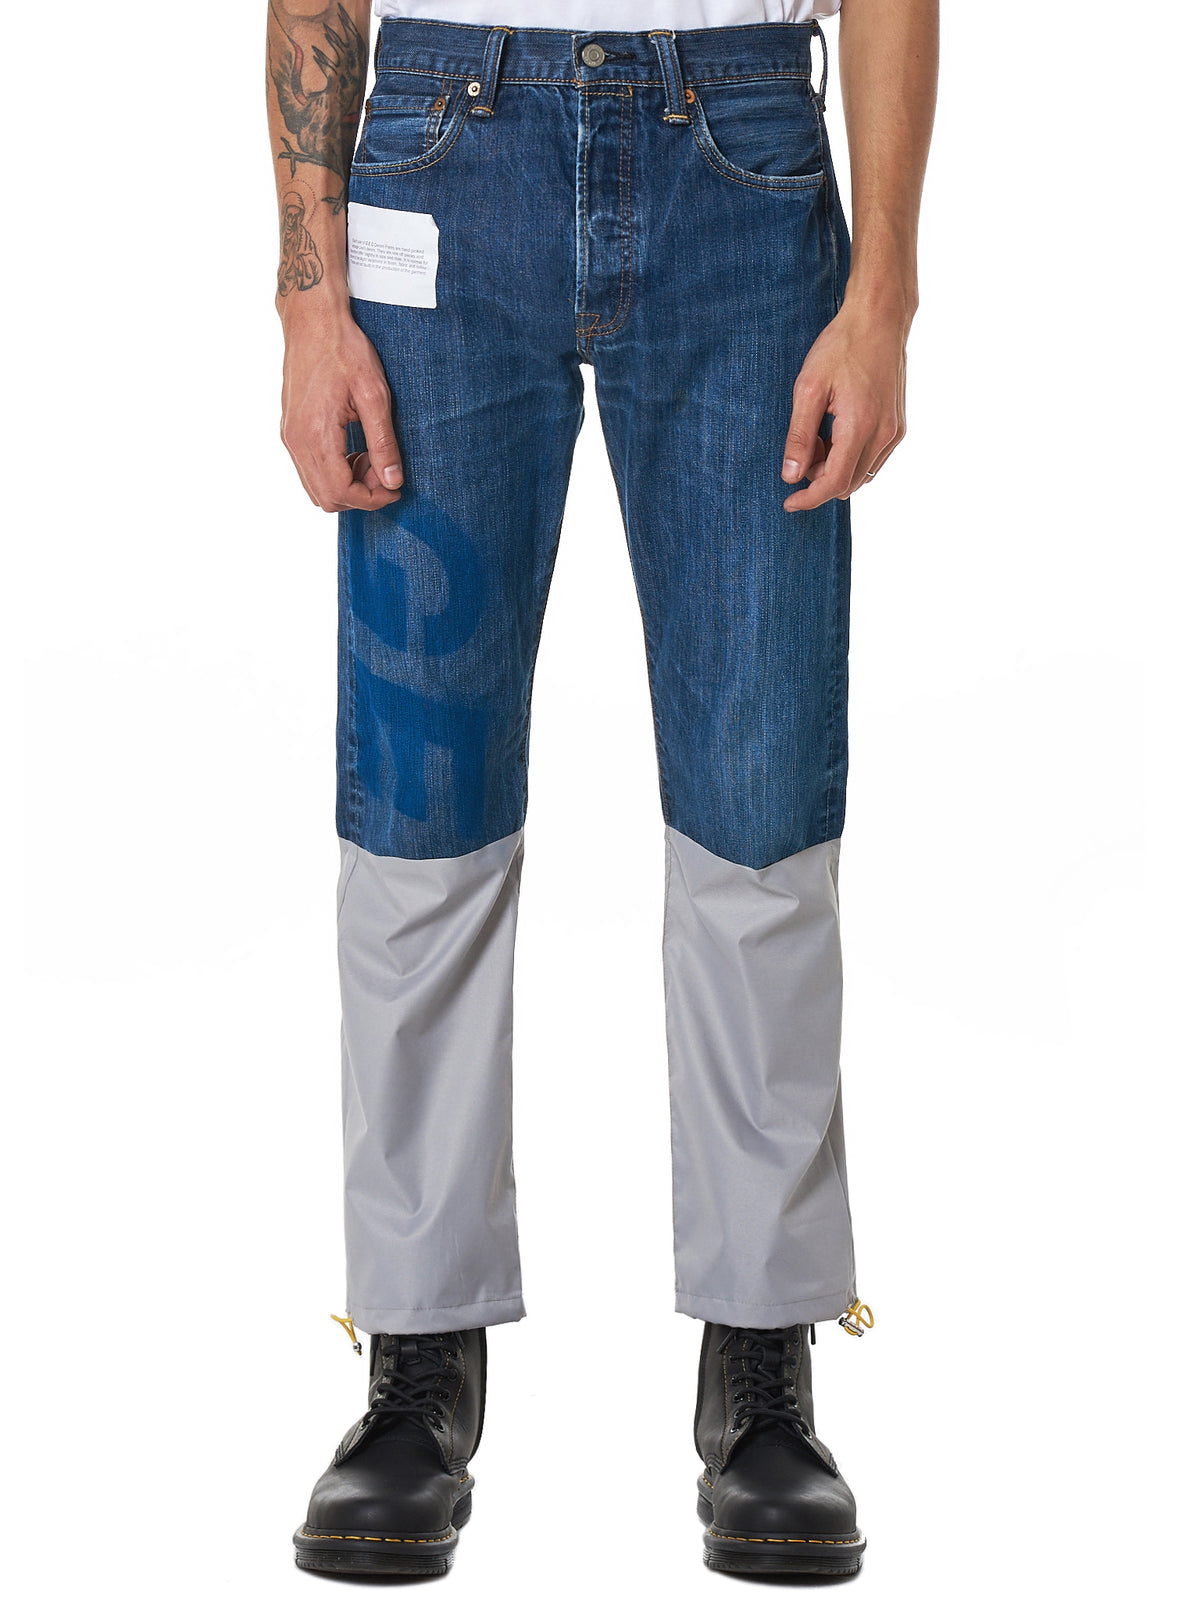 Geo Jeans - Hlorenzo Front